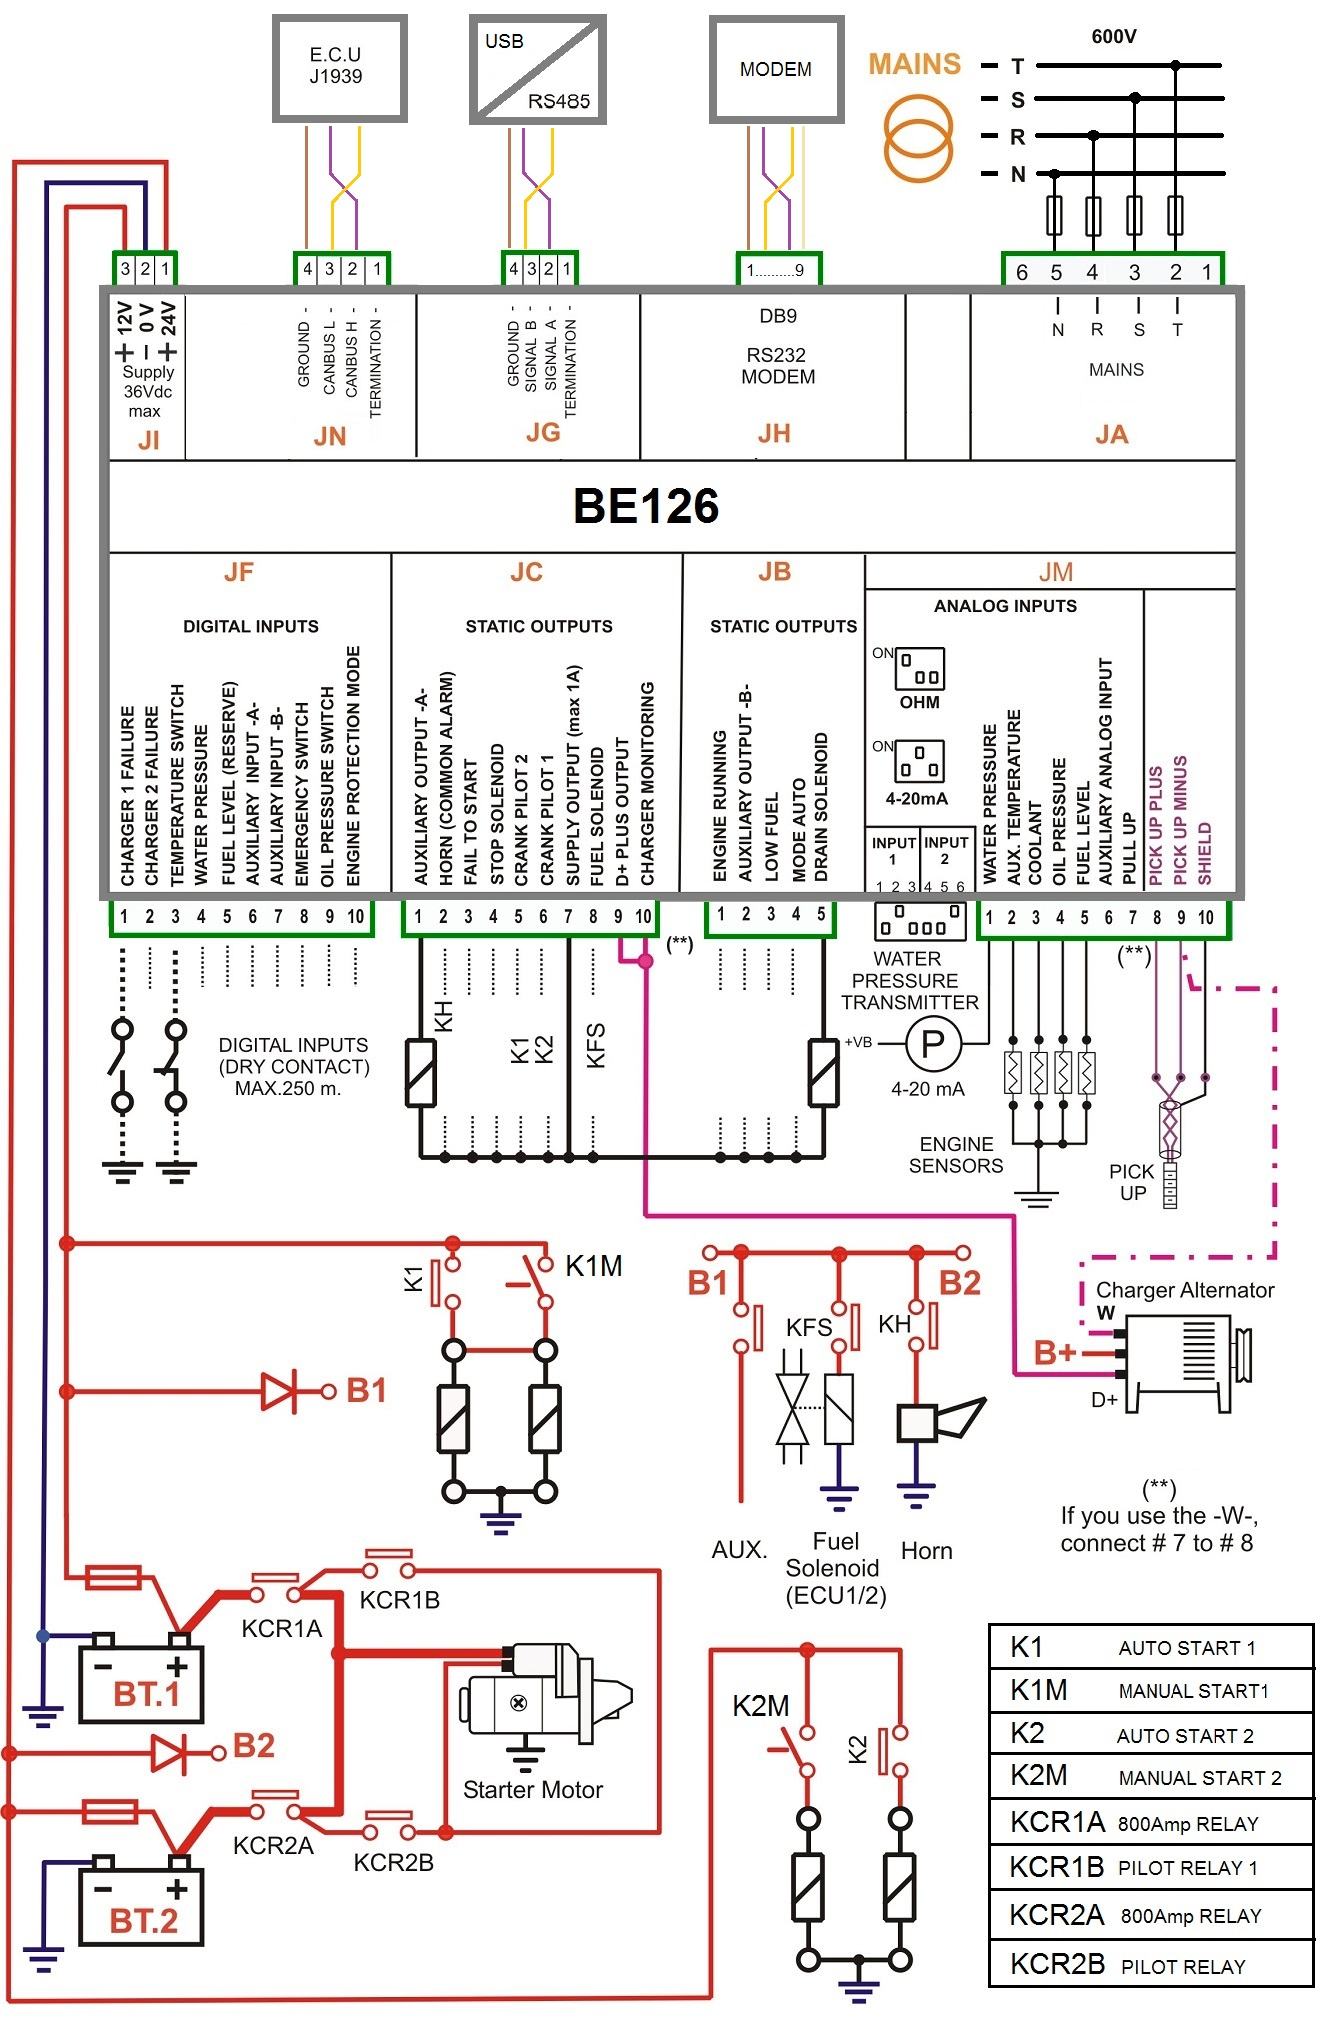 NFPA20 fire pump controller wiring diagram fire alarm panel wiring diagram conventional fire alarm panel rj48x wiring diagram at crackthecode.co